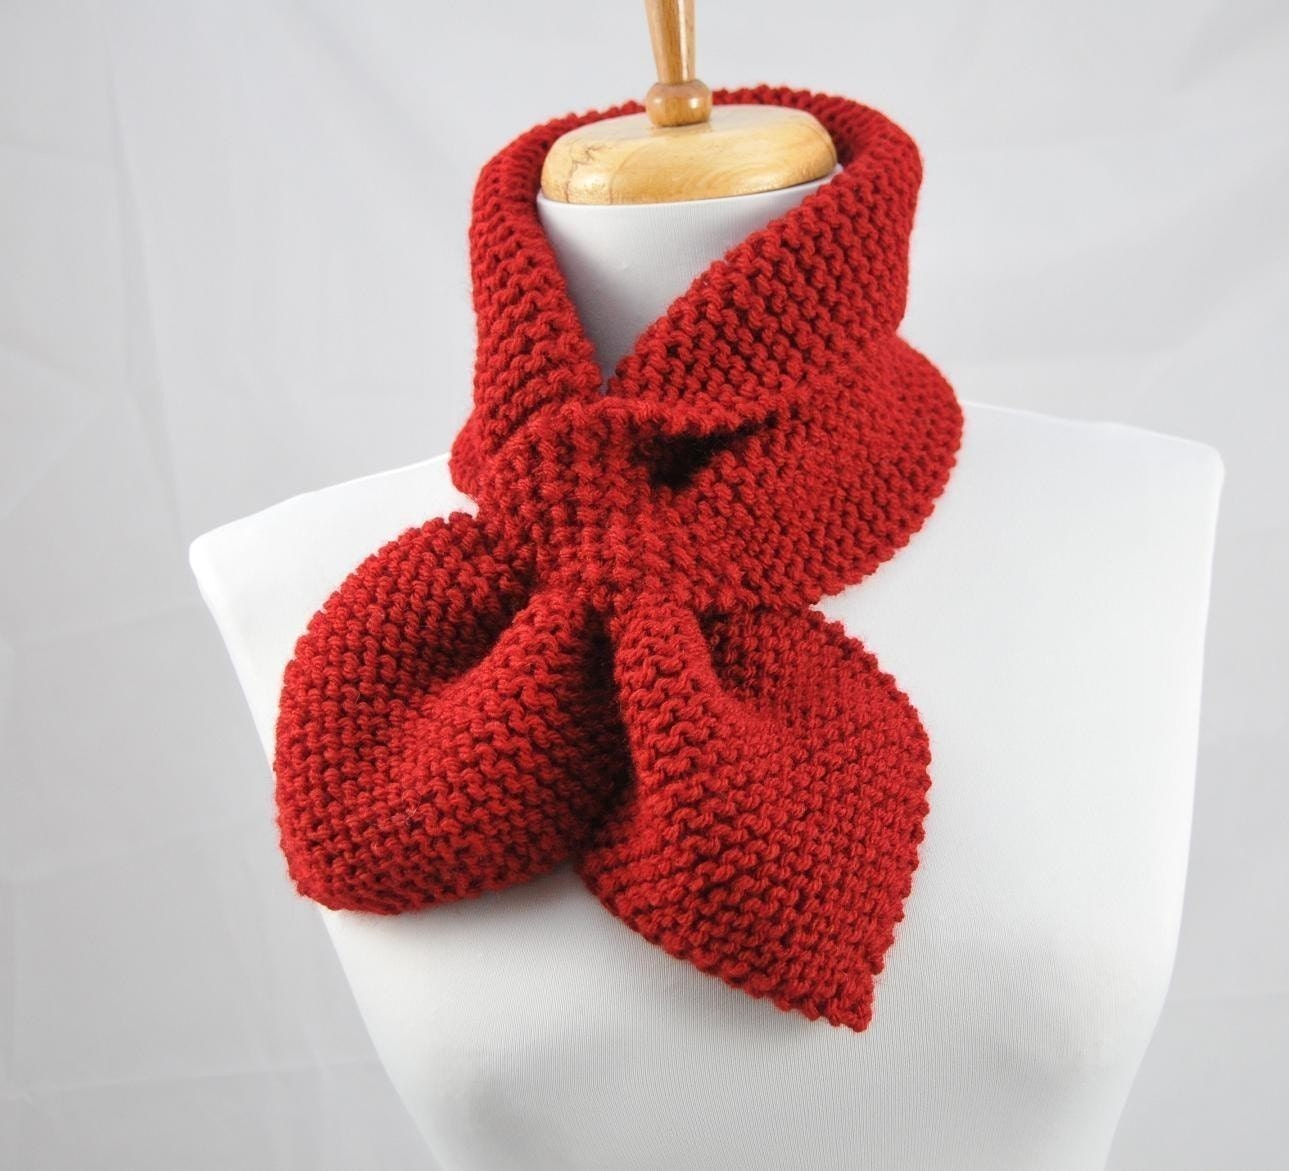 Knitting Pattern For Pull Through Scarf : KNITTING PATTERN Stay Put Scarf II Pull Through Keyhole